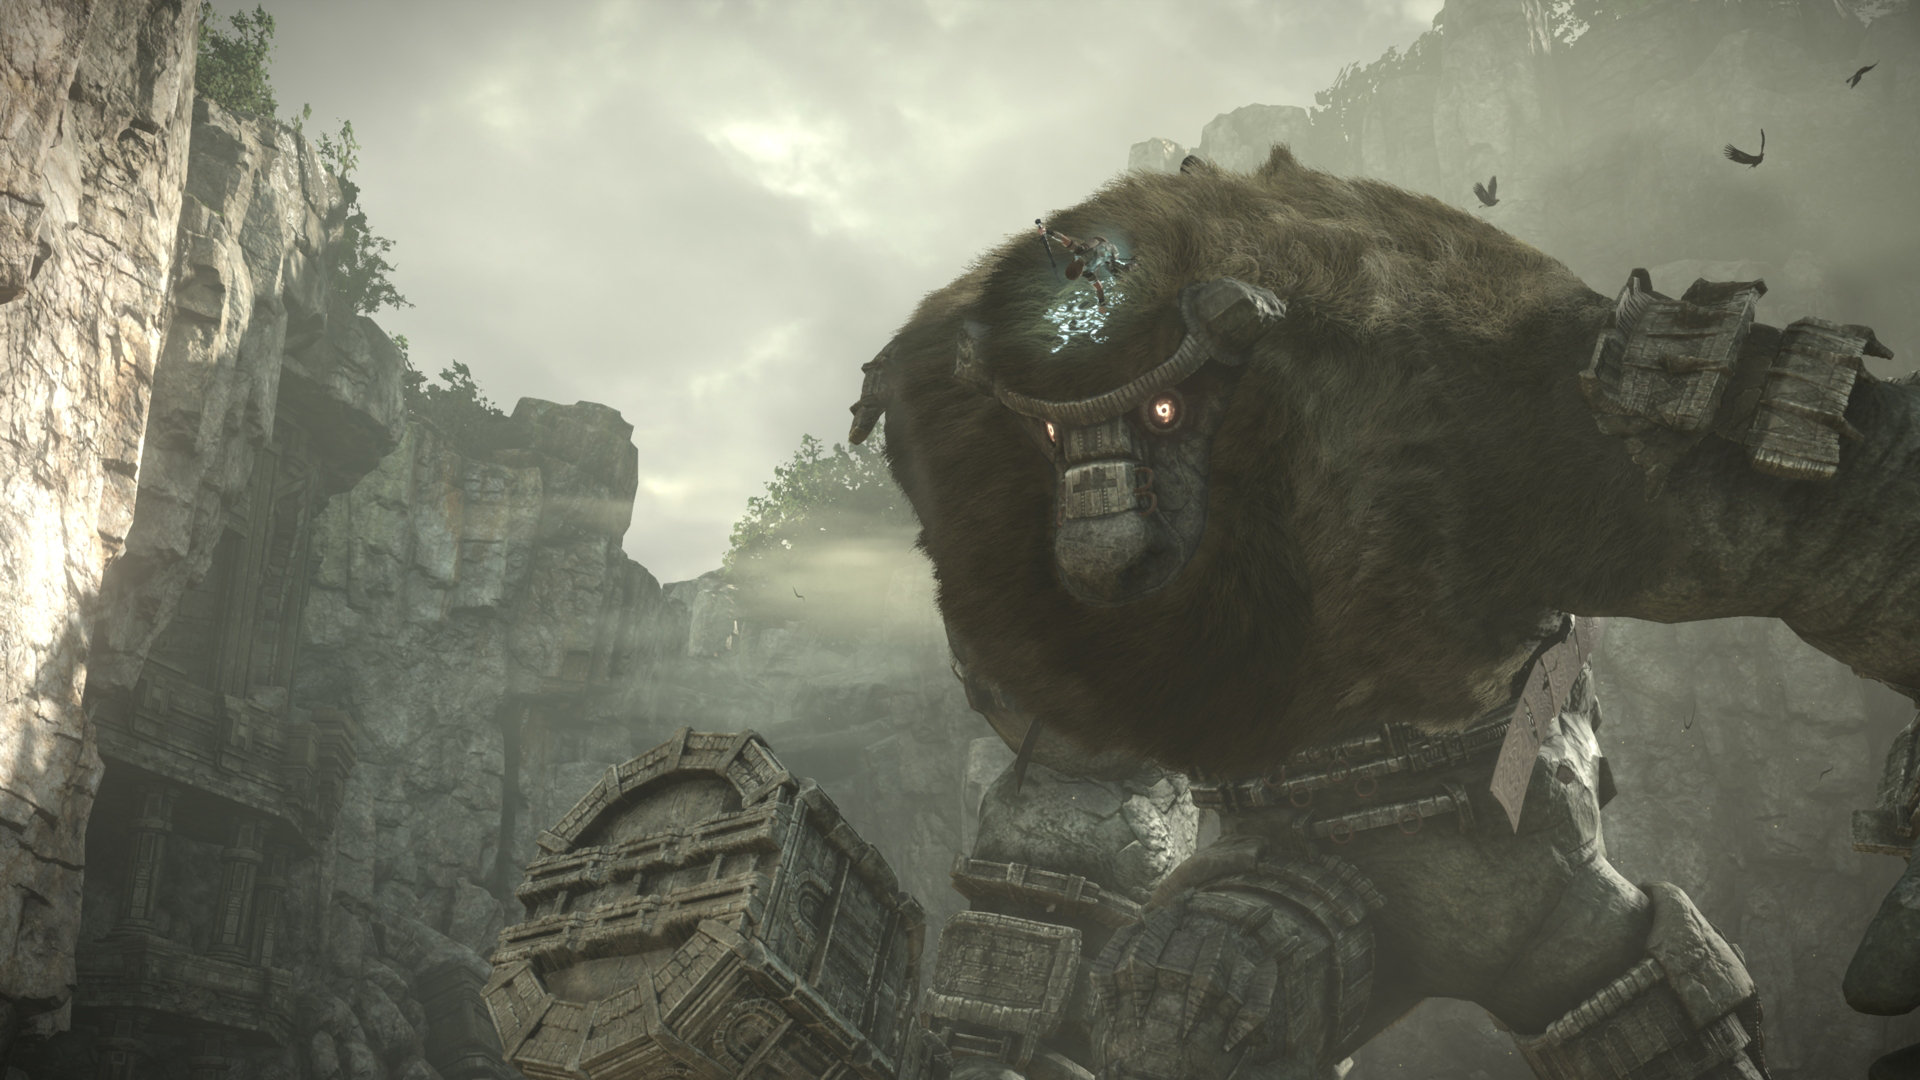 Shadow of the Colossus PS4 story